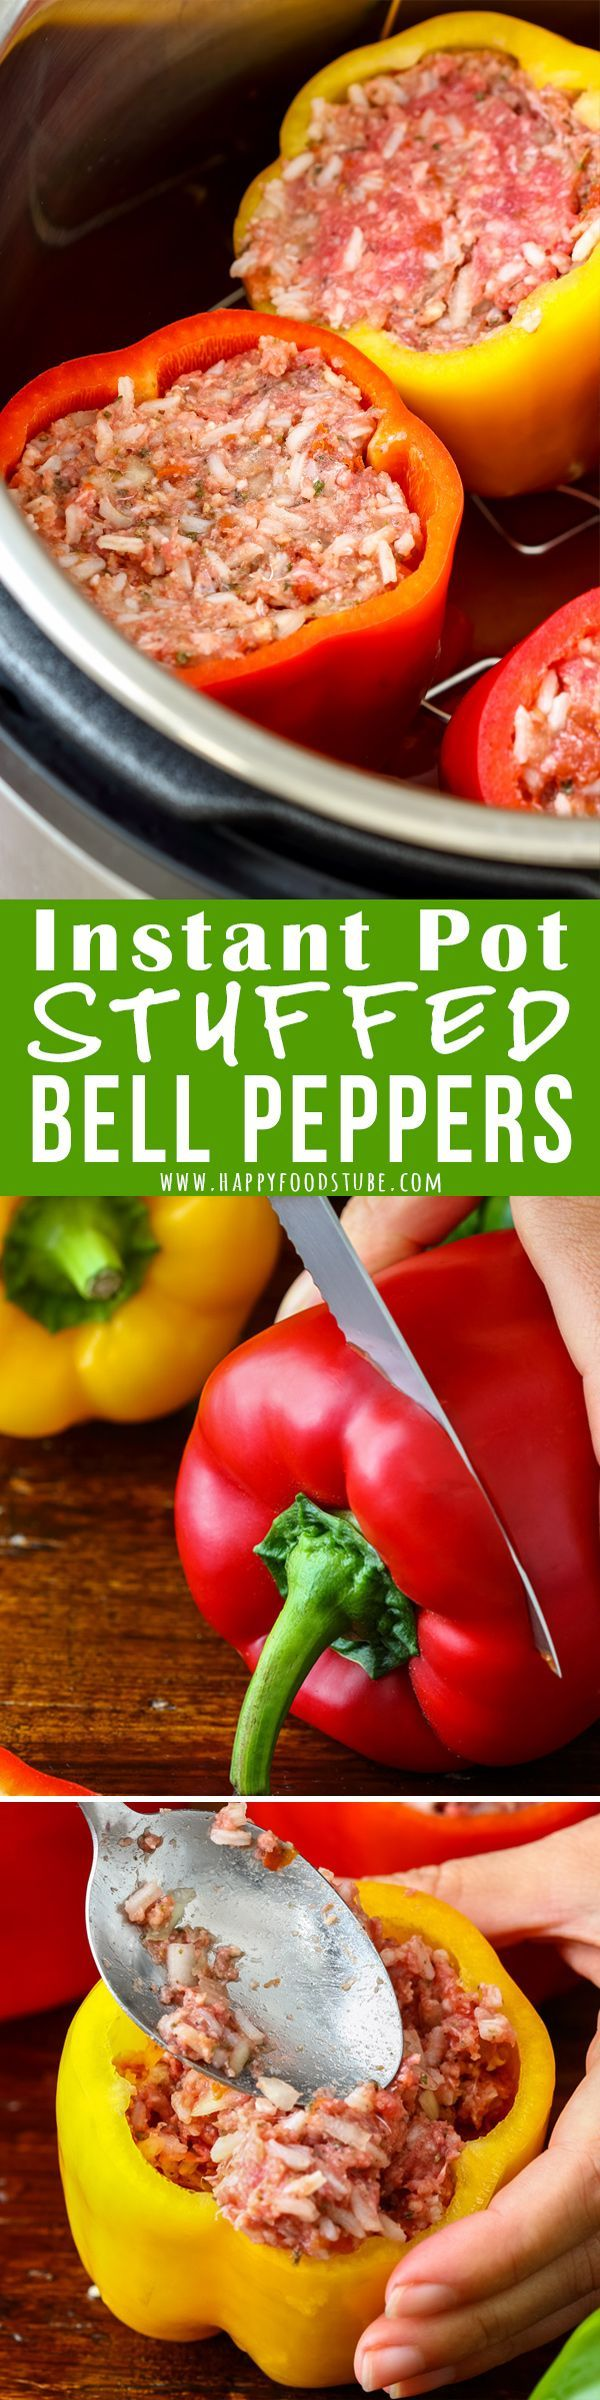 Instant Pot Stuffed Bell Peppers Pressure Cooker Stuffed Bell Peppers Recipe Instant Pot Dinner Recipes Easy Instant Pot Recipes Pressure Cooker Recipes